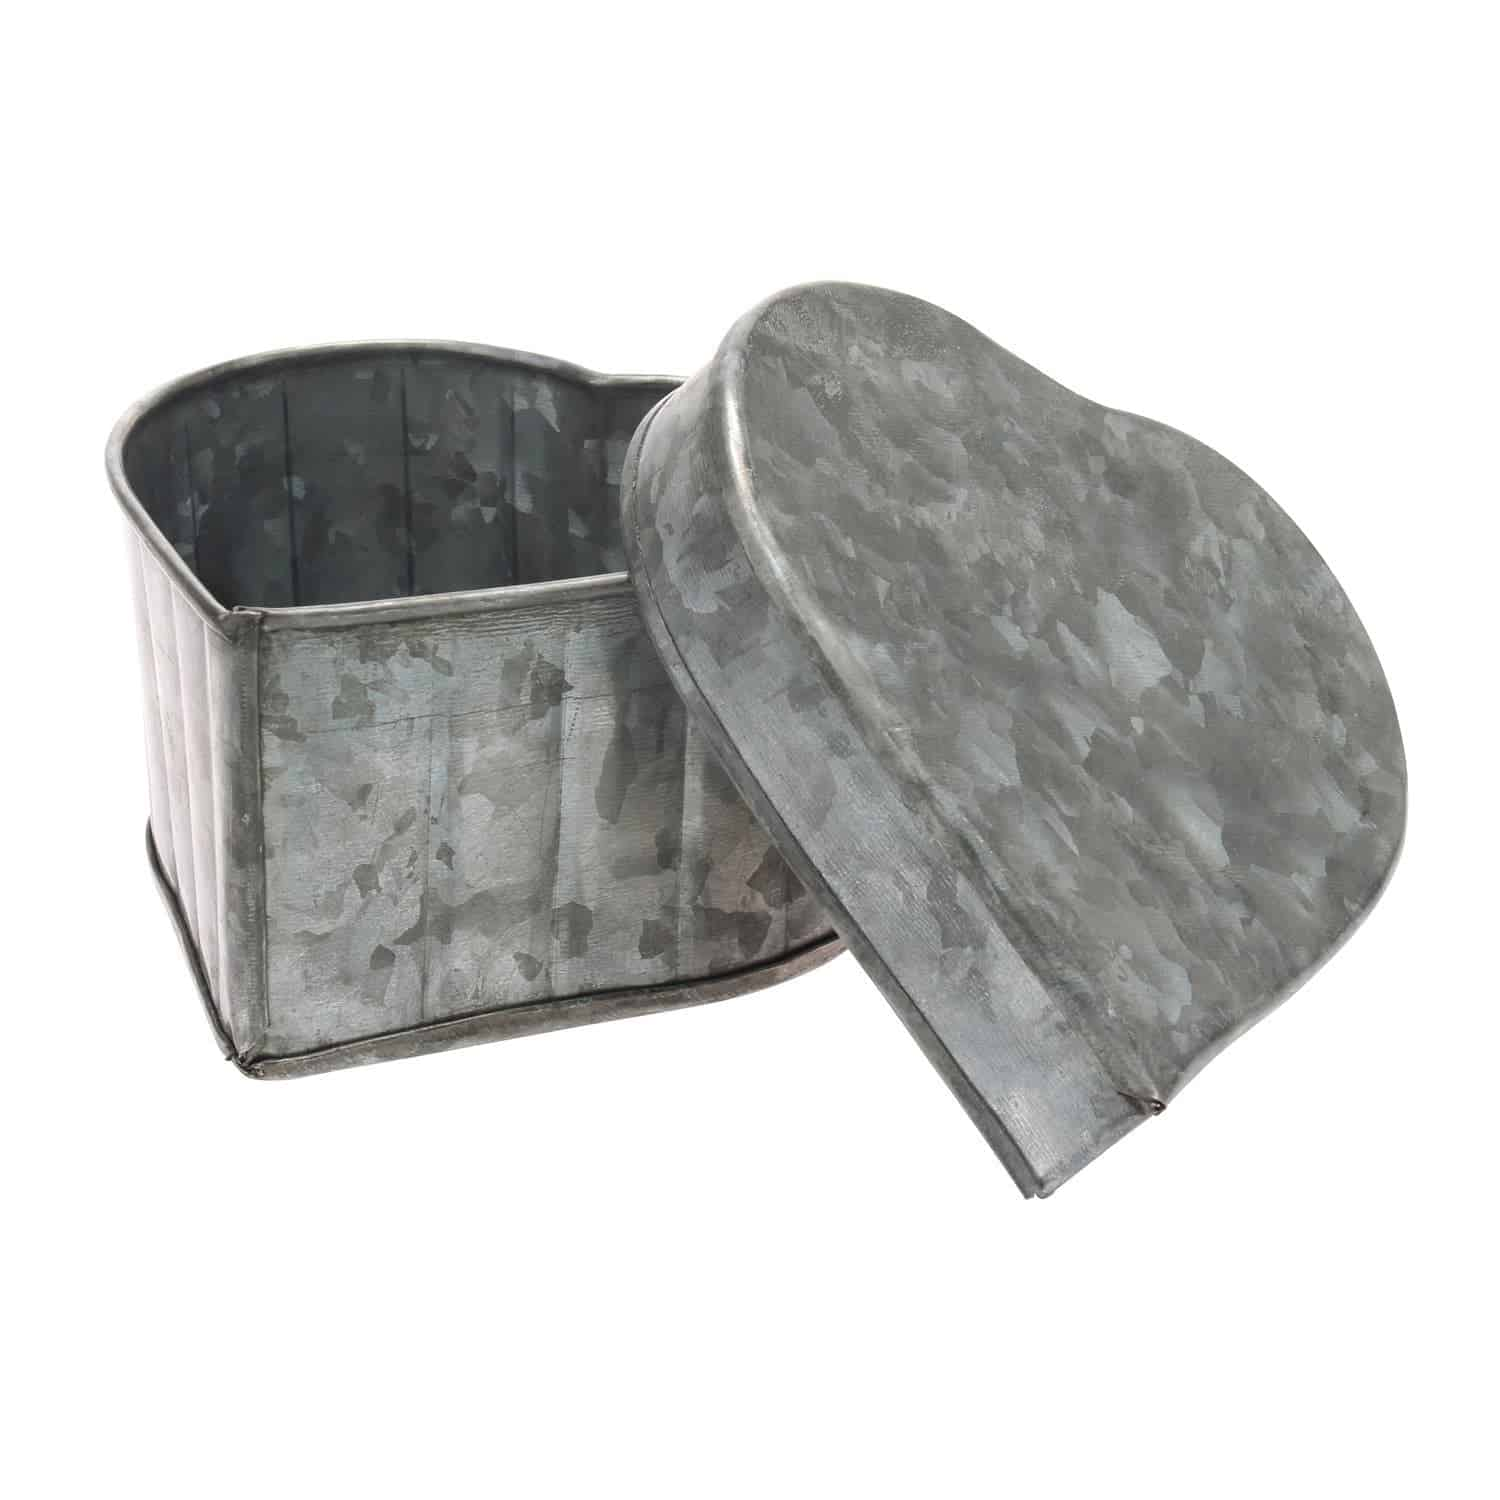 Awesome Crafting Blanks You Can Get on Amazon Prime : Galvanized Heart Container | www.thepinningmama.com